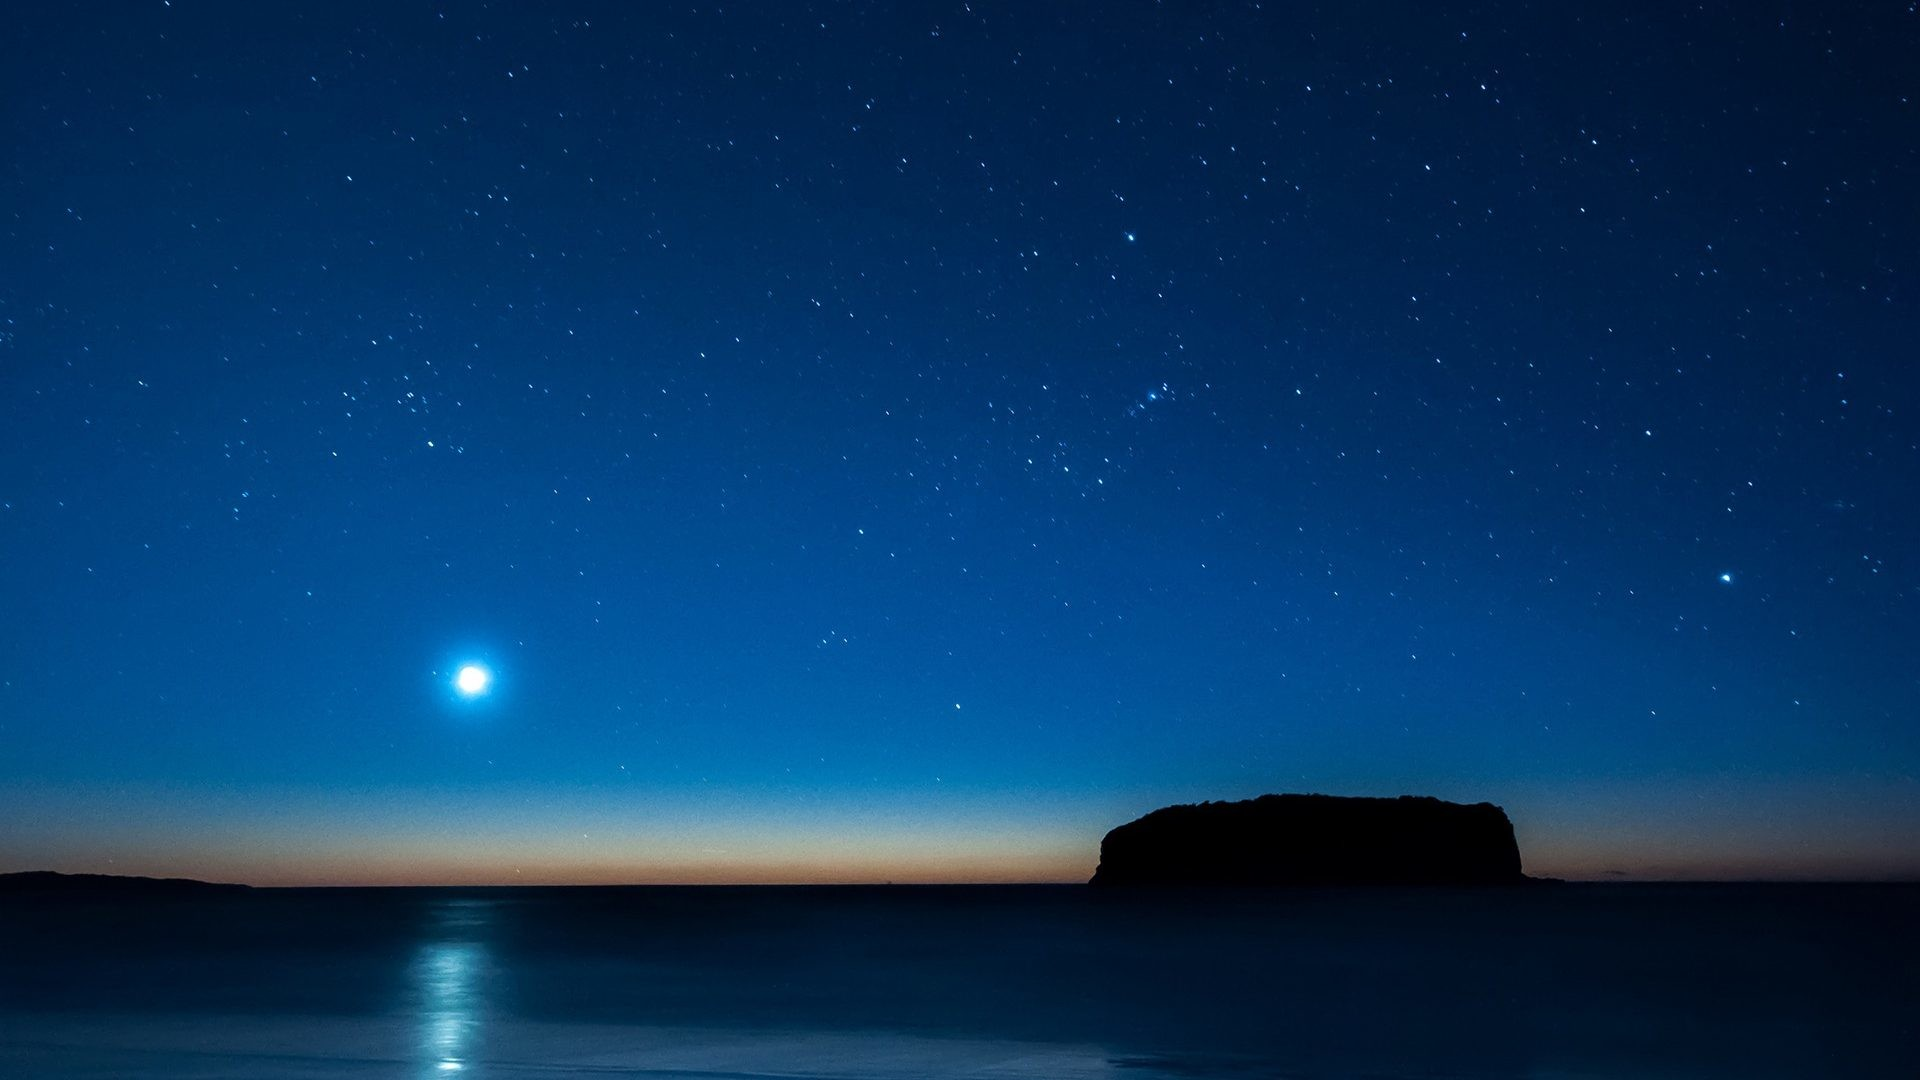 Sky Wallpapers: Animated Night Sky Wallpaper (51+ Images